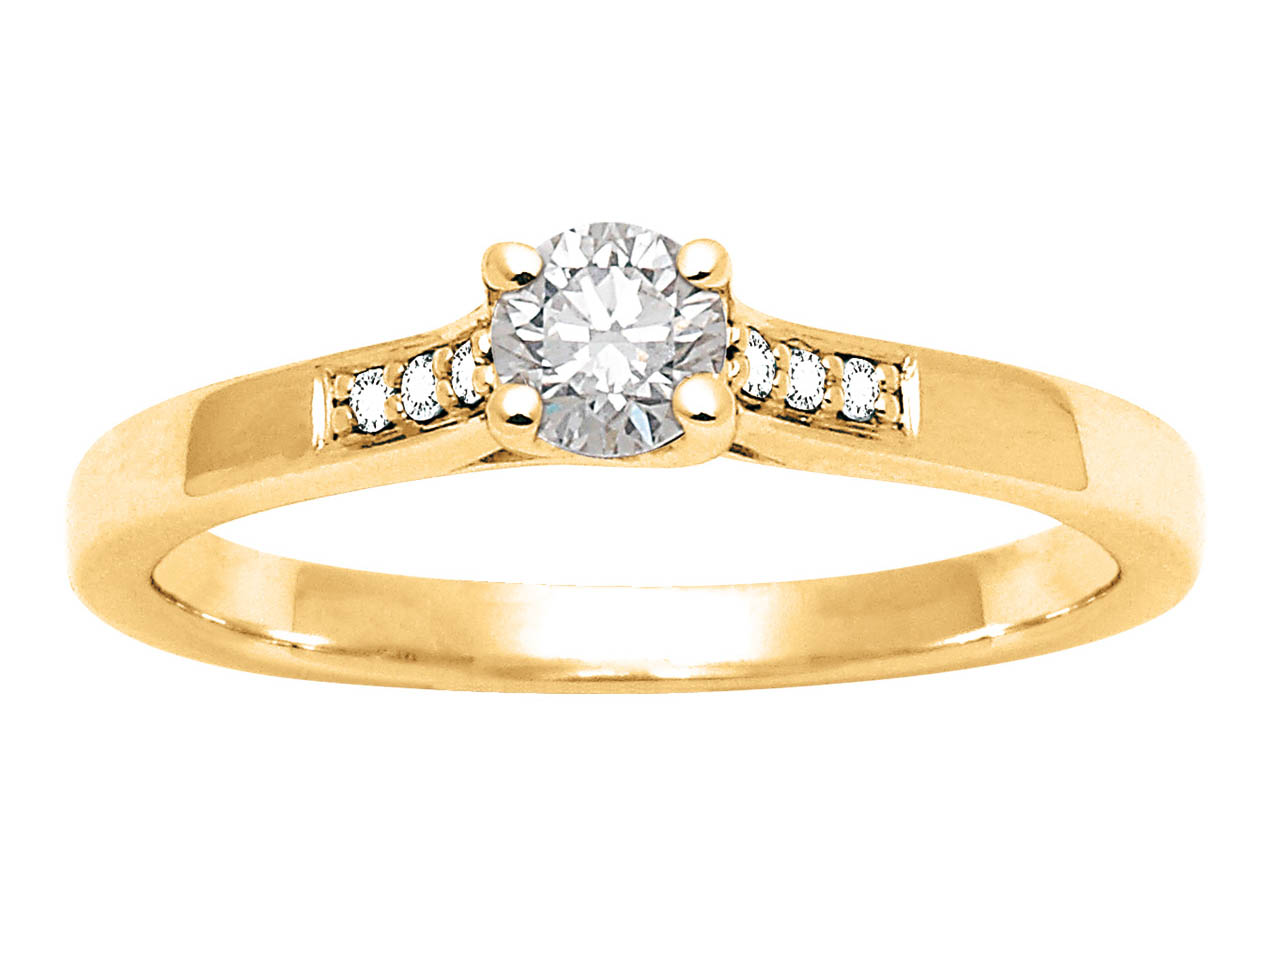 Solitaire accompagné, Or jaune 18 k, Dts 0,29 ct, doigt 52